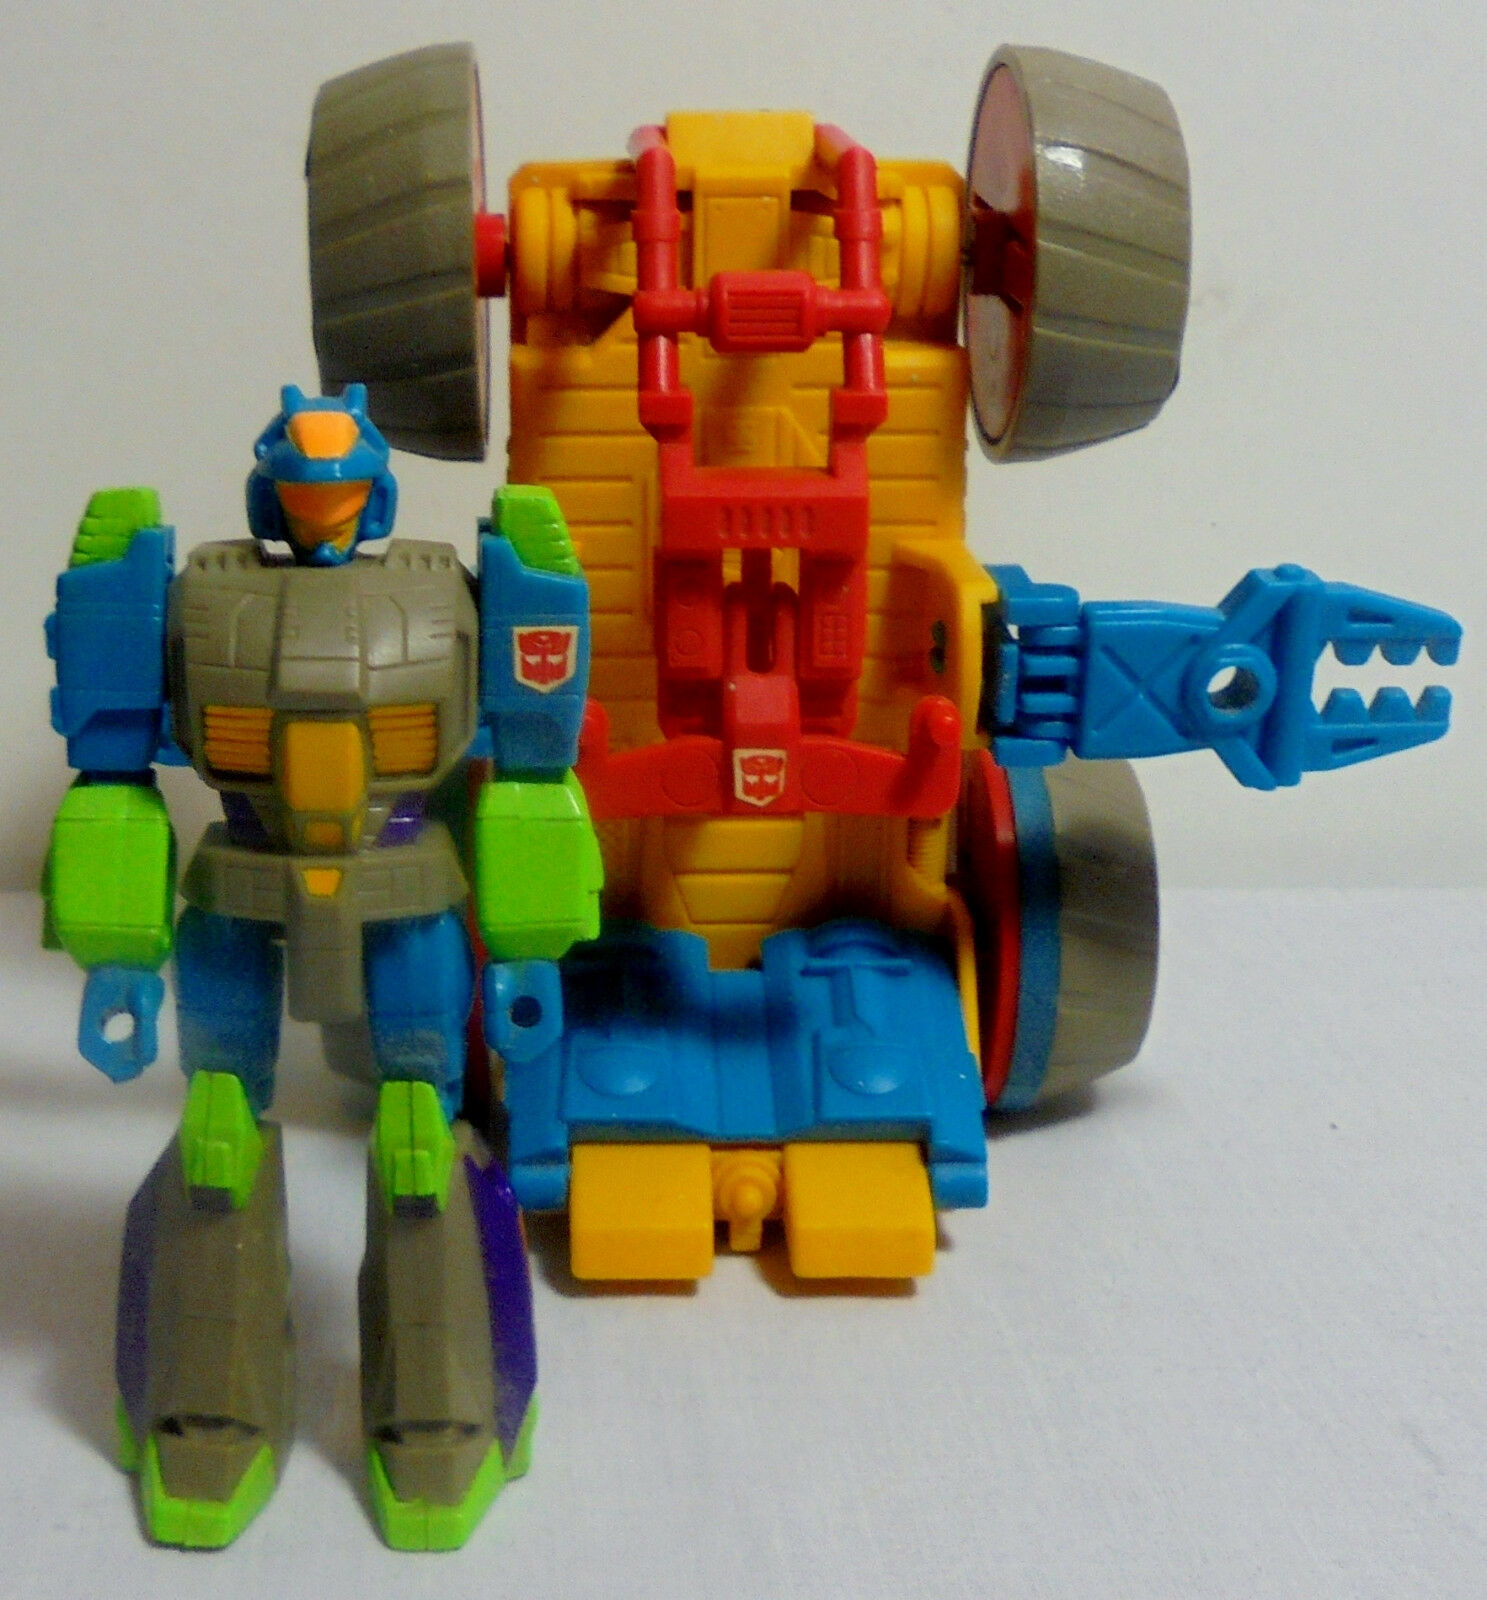 TRANSFORMERS G1 ACTION MASTERS RUMBLER INCOMPLETE EUROPEAN FIGURE ROBOT VEHICLE